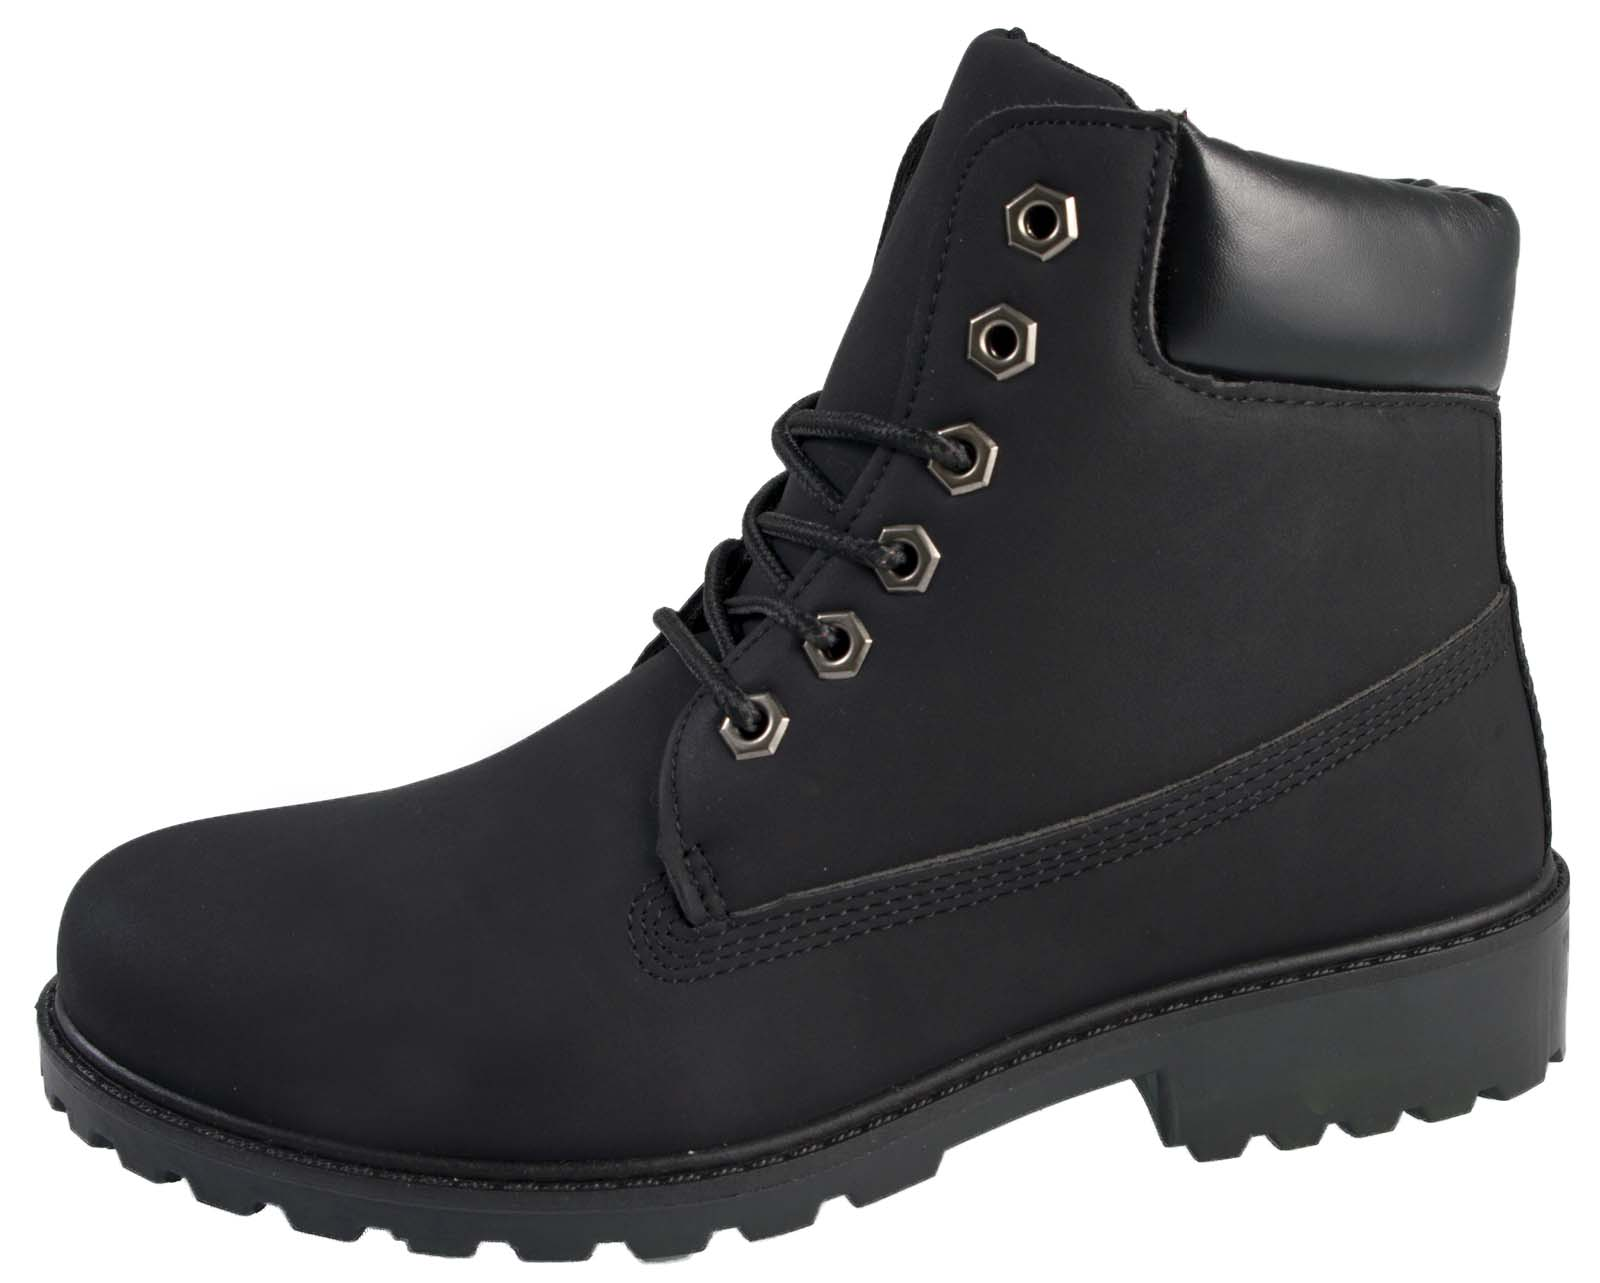 8eb56a0c2f751 Details about Boys Girls Faux Leather Worker Ankle Boots Winter Military  Combat Shoes Size